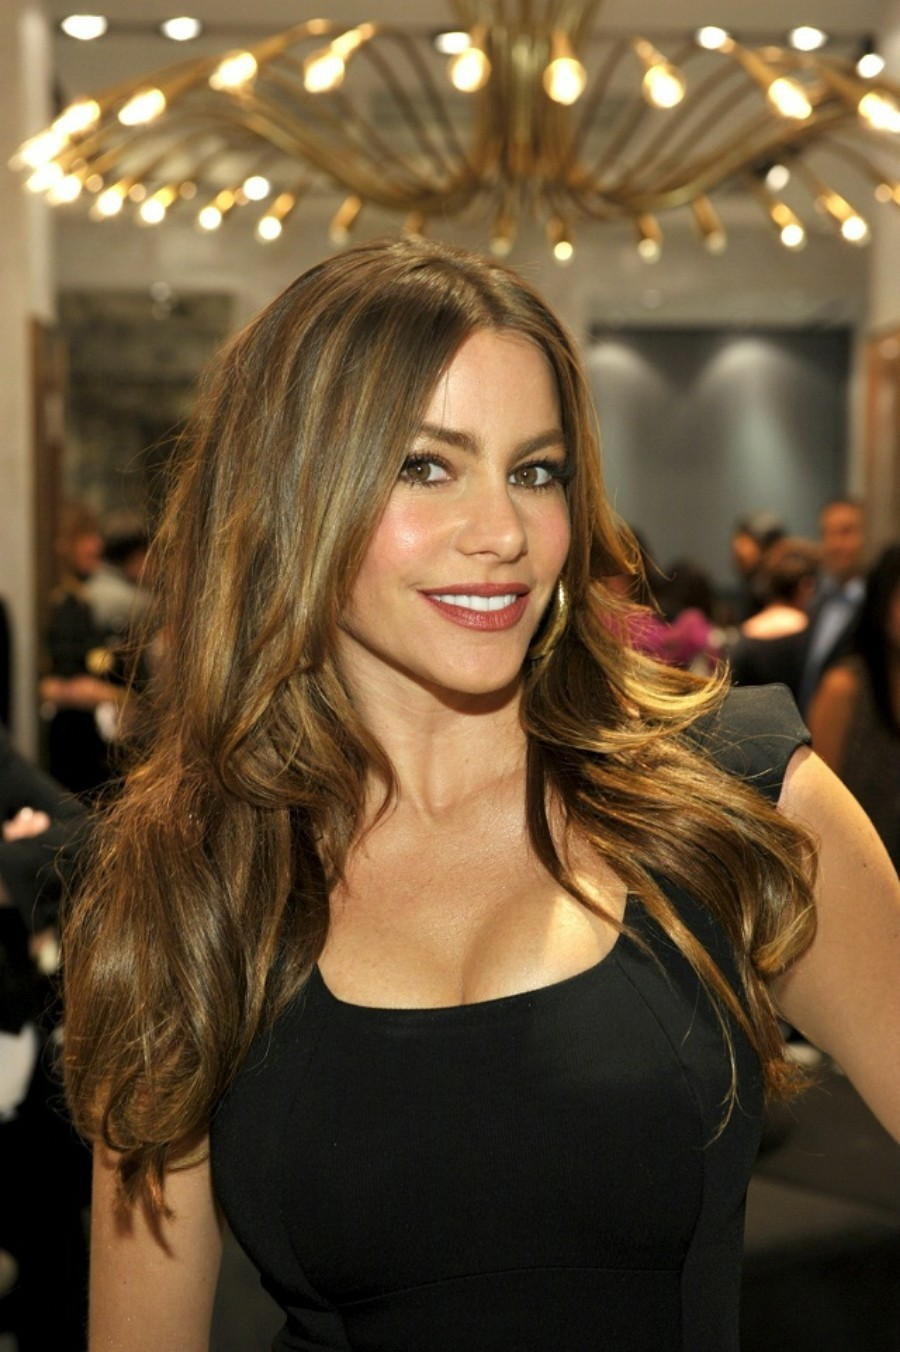 party cocktail sofia vergara HD Wallpaper